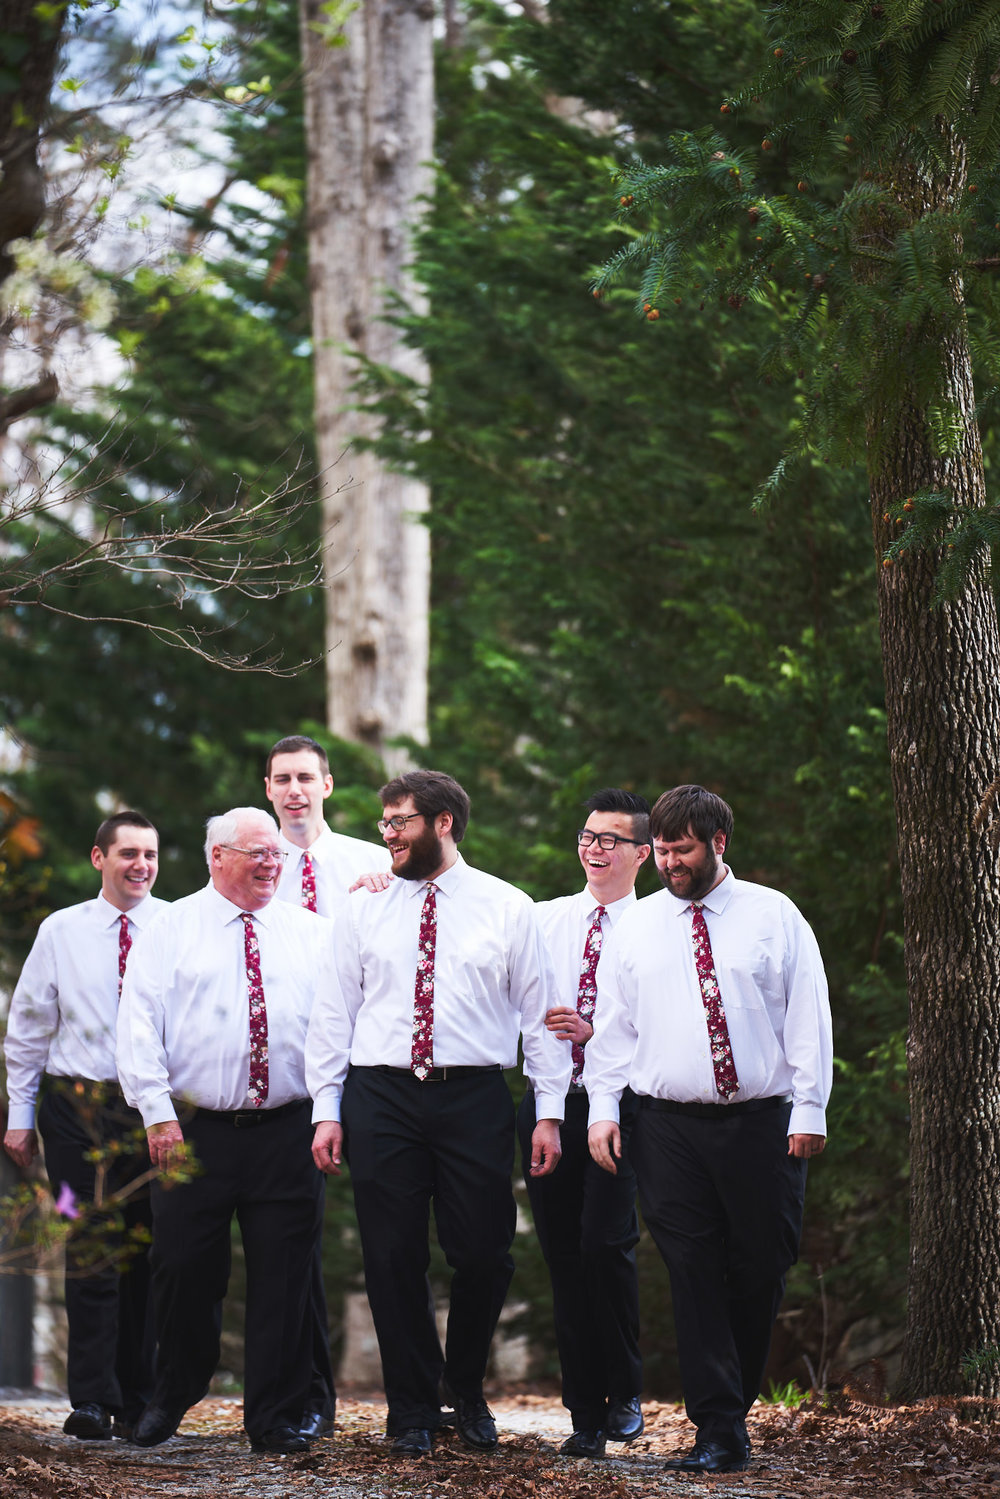 The groom and his men | Southern Bleachery in Taylors SC